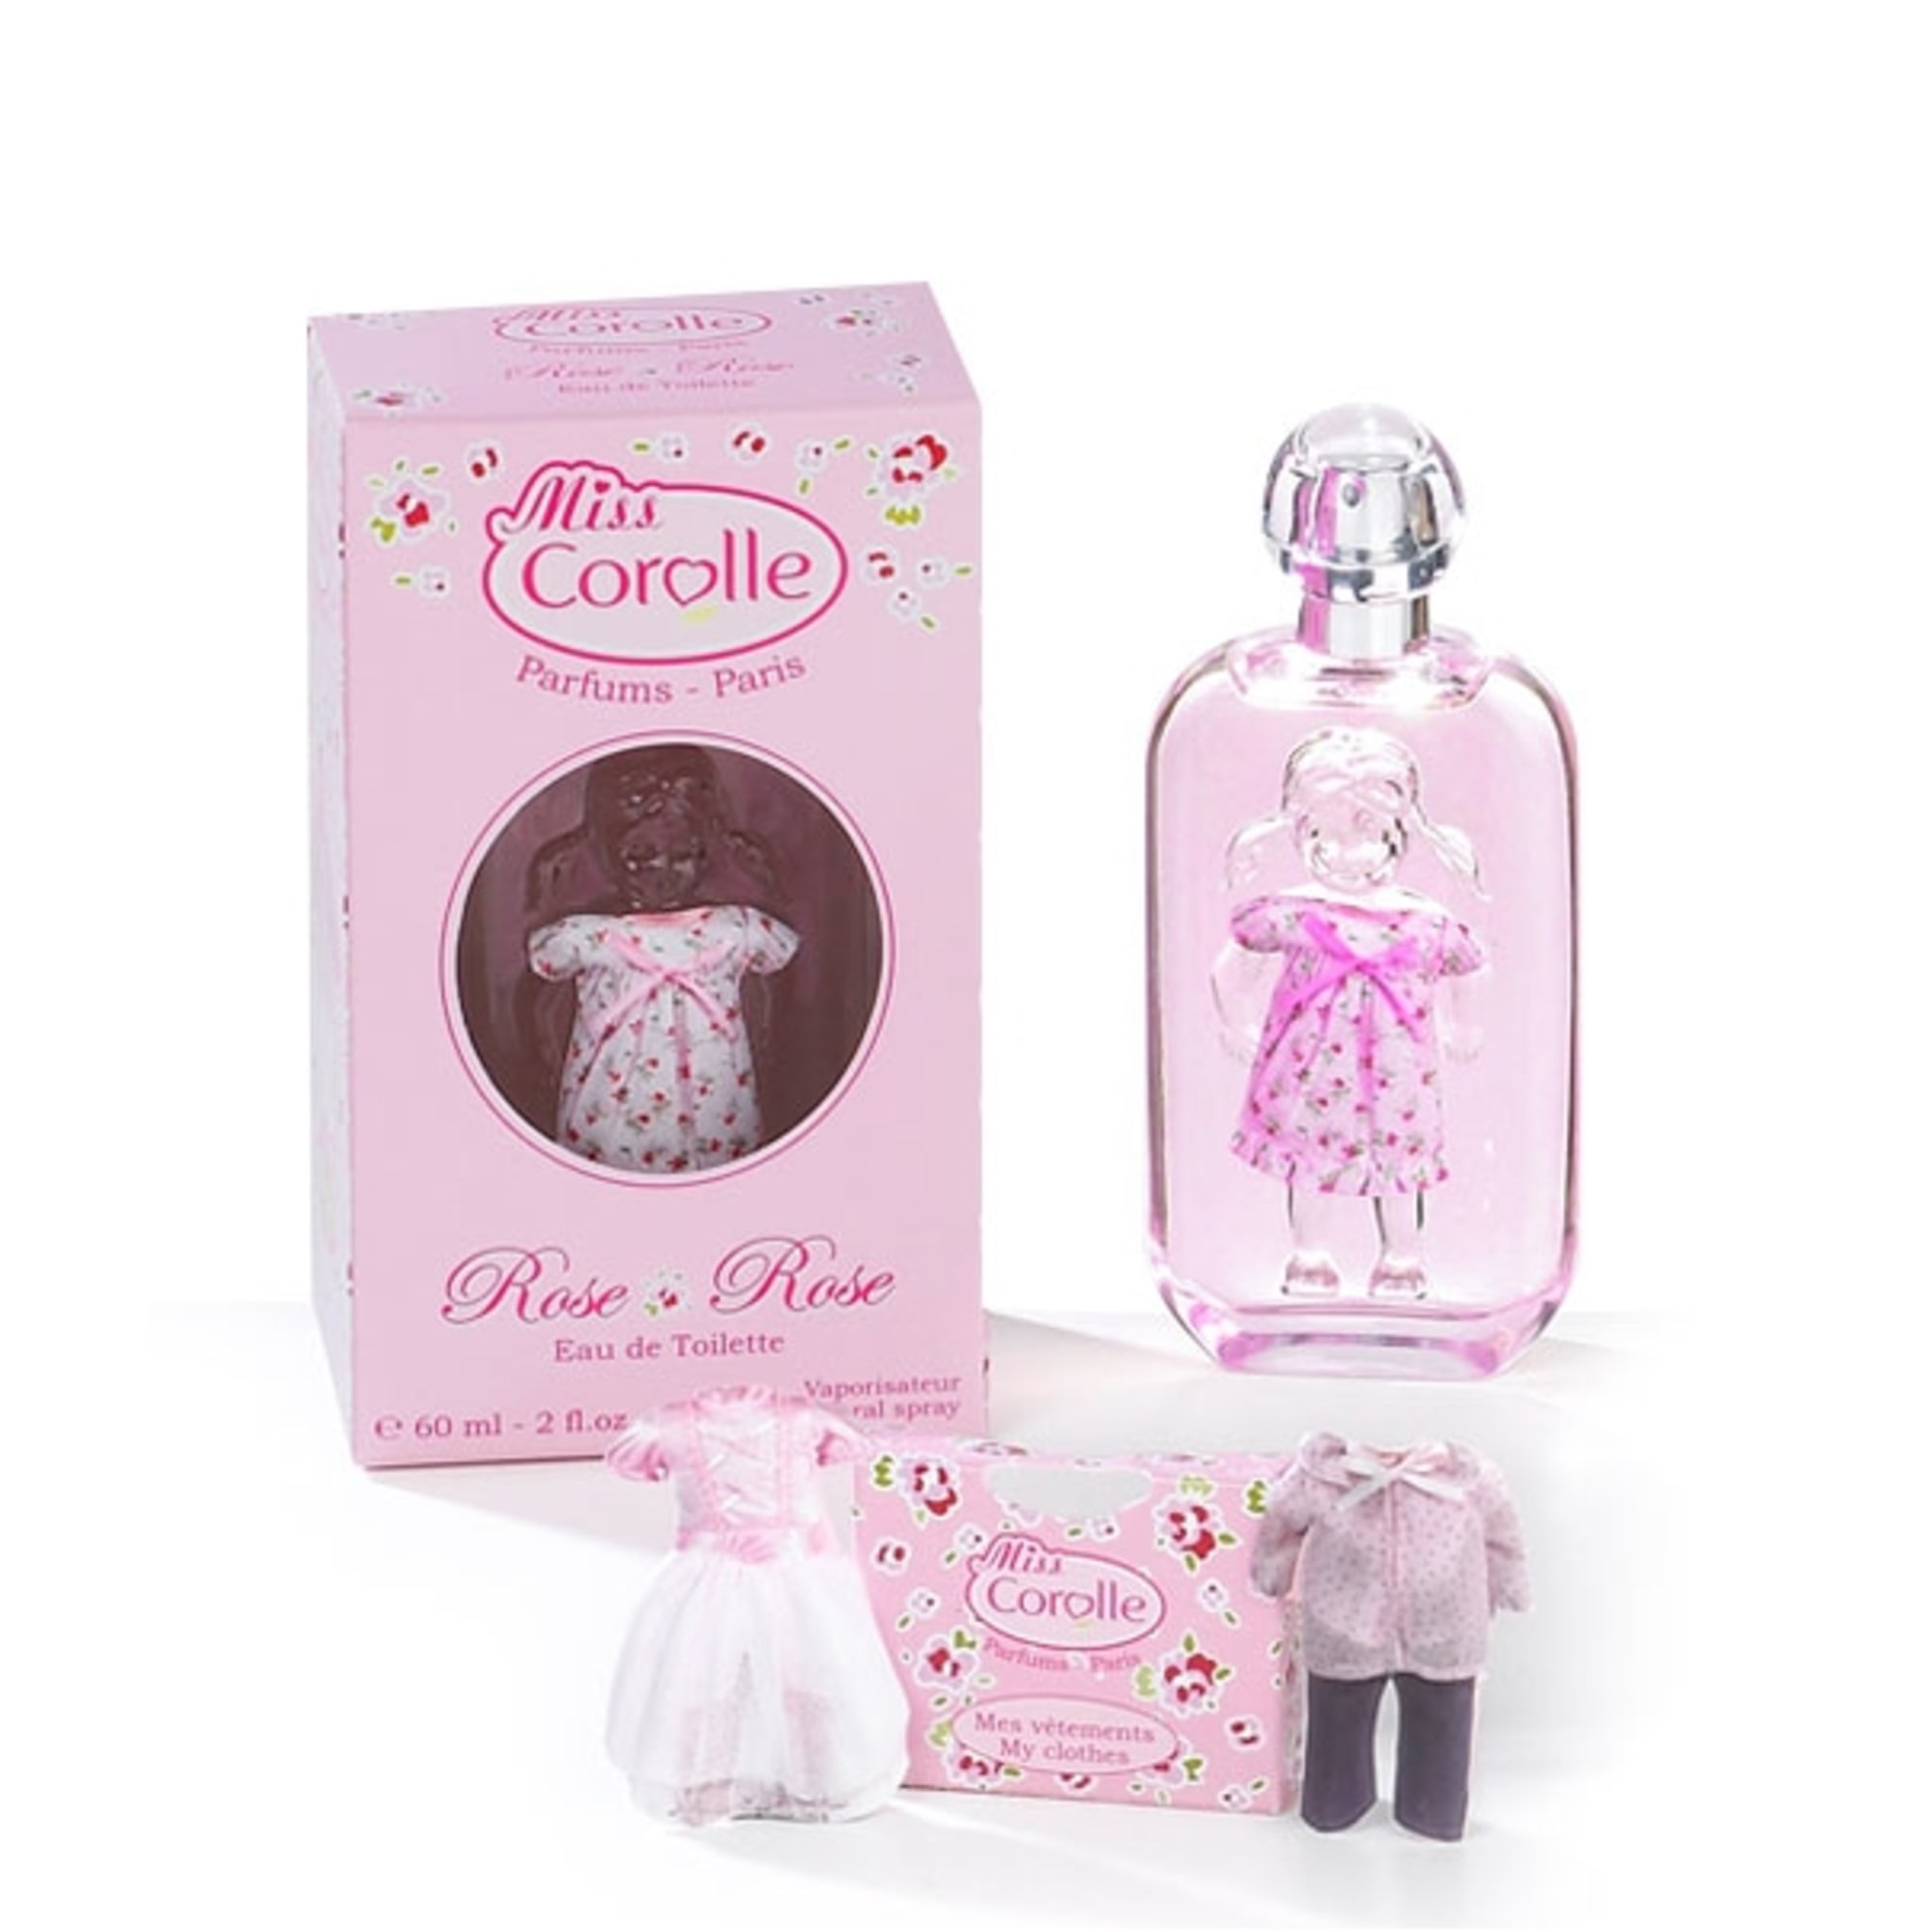 Parfum fille MISS COROLLE